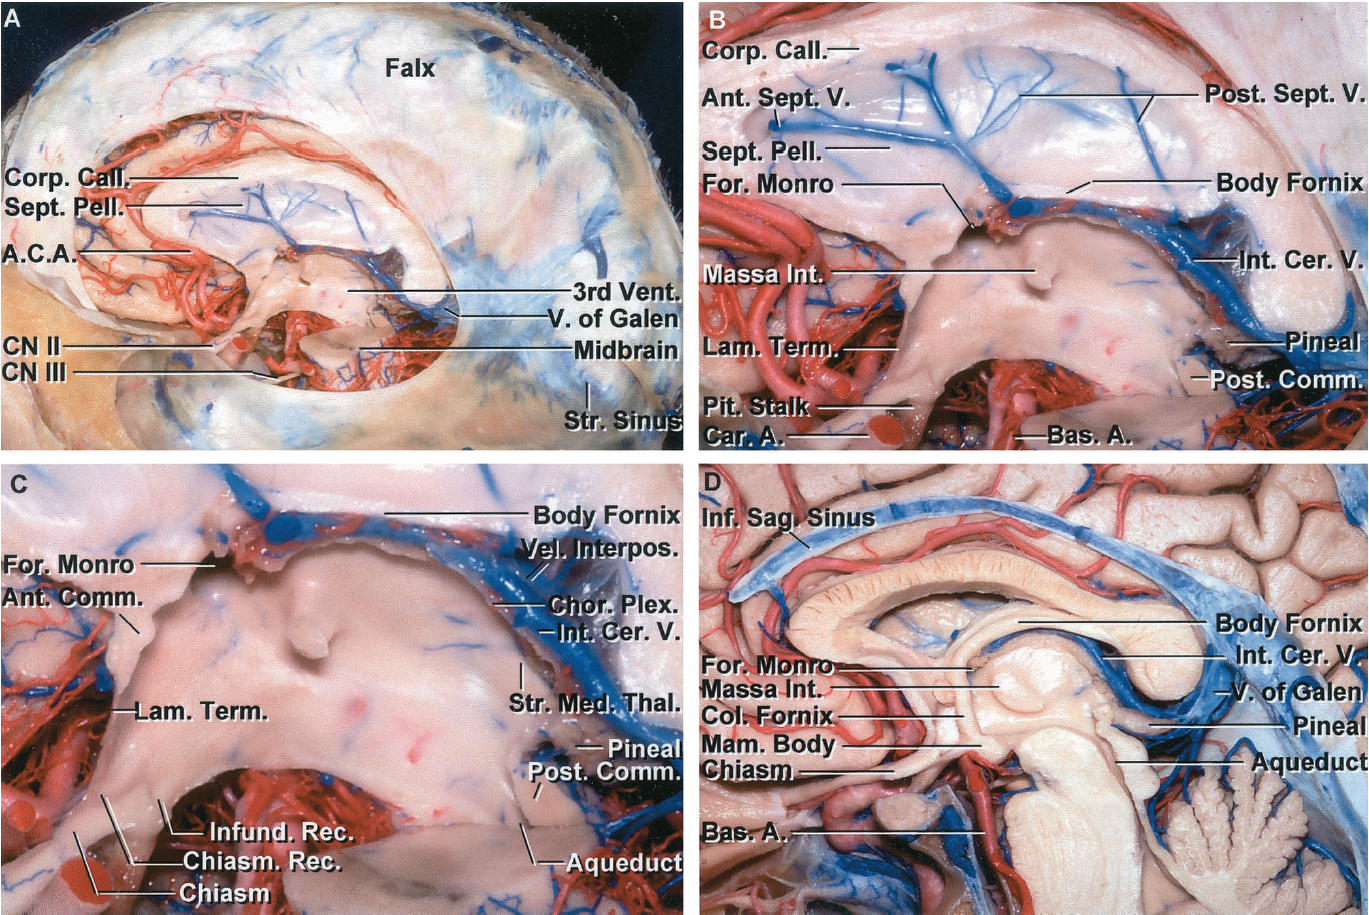 FIGURE 5.11. A-D. Midsagittal views of the third ventricle. A, the third ventricle sits in the center of the cranium below the corpus callosum, body of the lateral ventricles, and septum pellucidum, above the midbrain and interpeduncular fossa, anterior to the quadrigeminal cistern and vein of Galen, and posterior to the anterior cerebral arteries. The interhemispheric fissure, along the side of the falx, offers one avenue to the third ventricle. The posterior part of the third ventricle can also be approached along the junction of the falx and tentorium, adjacent the straight sinus. B, enlarged view. The septum pellucidum separates the bodies and frontal horns of the lateral ventricles and is crossed by anterior and posterior septal veins. The anterior cerebral artery ascends along the front wall of the third ventricle, the basilar bifurcation is positioned below the floor, and the vein of Galen blocks access to the posterior wall. C, enlarged view of the third ventricle. The anterior wall of the third ventricle is formed by the lamina terminalis and anterior commissure and blends above into the rostrum of the corpus callosum. The roof is formed by the body of the fornix and the velum interpositum through which the internal cerebral veins and medial posterior choroidal arteries course. The posterior wall, formed by the pineal and habenular and posterior commissures, is located anterior to the quadrigeminal cistern and the venous complex created by numerous veins converging on the vein of Galen. The floor is formed, from anterior to posterior, by the optic chiasm, tuber cinereum above the pituitary stalk, mamillary bodies, and upper midbrain. The section extends to the lateral side of the mamillary bodies. The velum interpositum is the space within the roof of the third ventricle along which the internal cerebral veins and medial posterior choroidal arteries pass. The body of the fornix is located above the velum interpositum. The upper wall of the velum interpositu